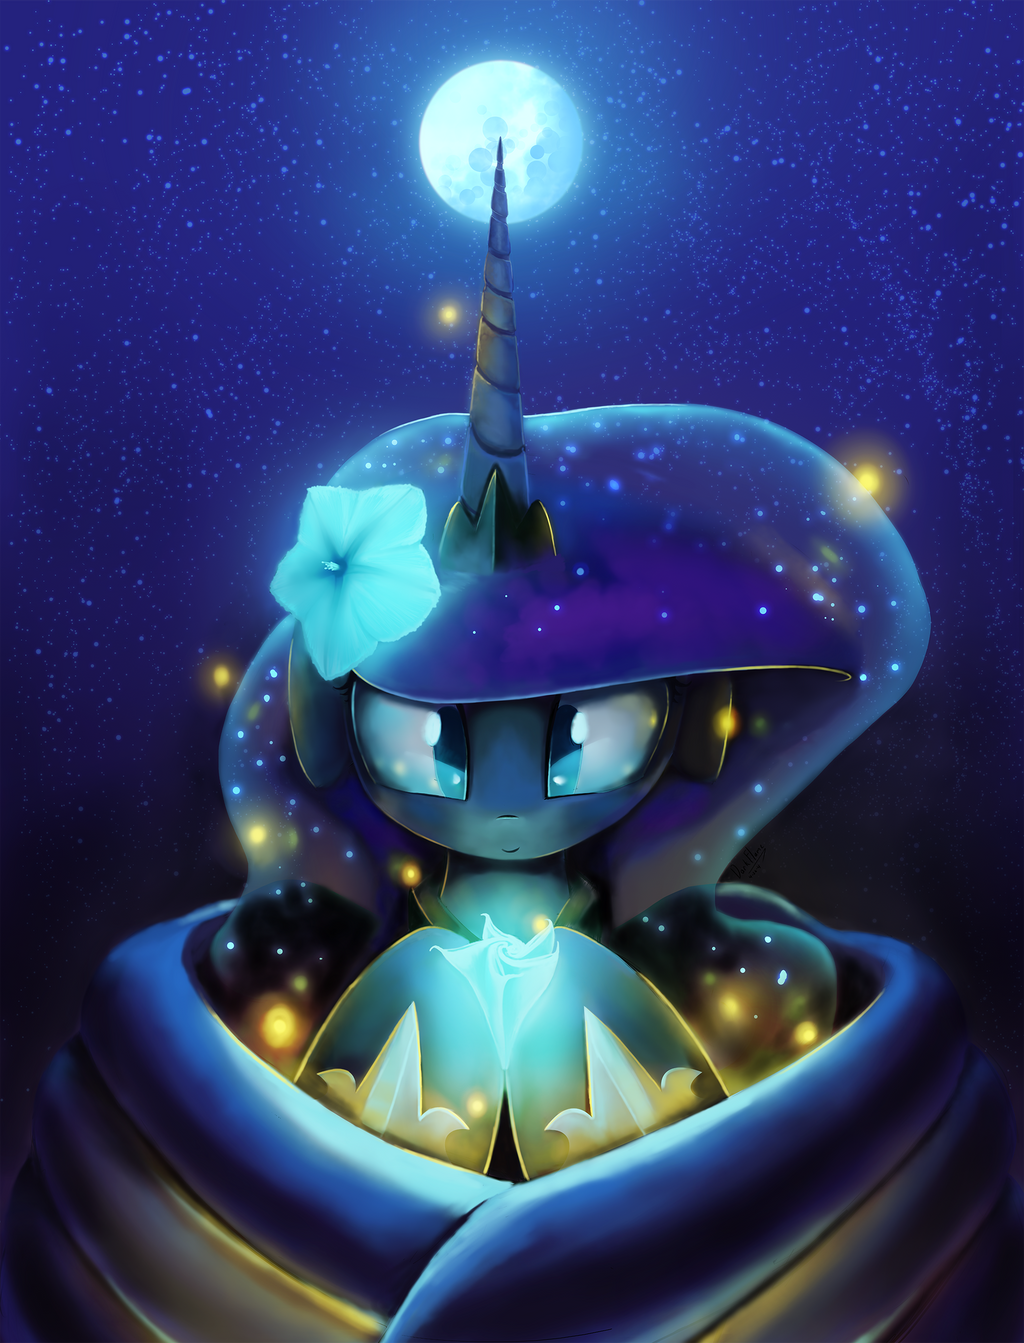 Bloom of the Moon's light